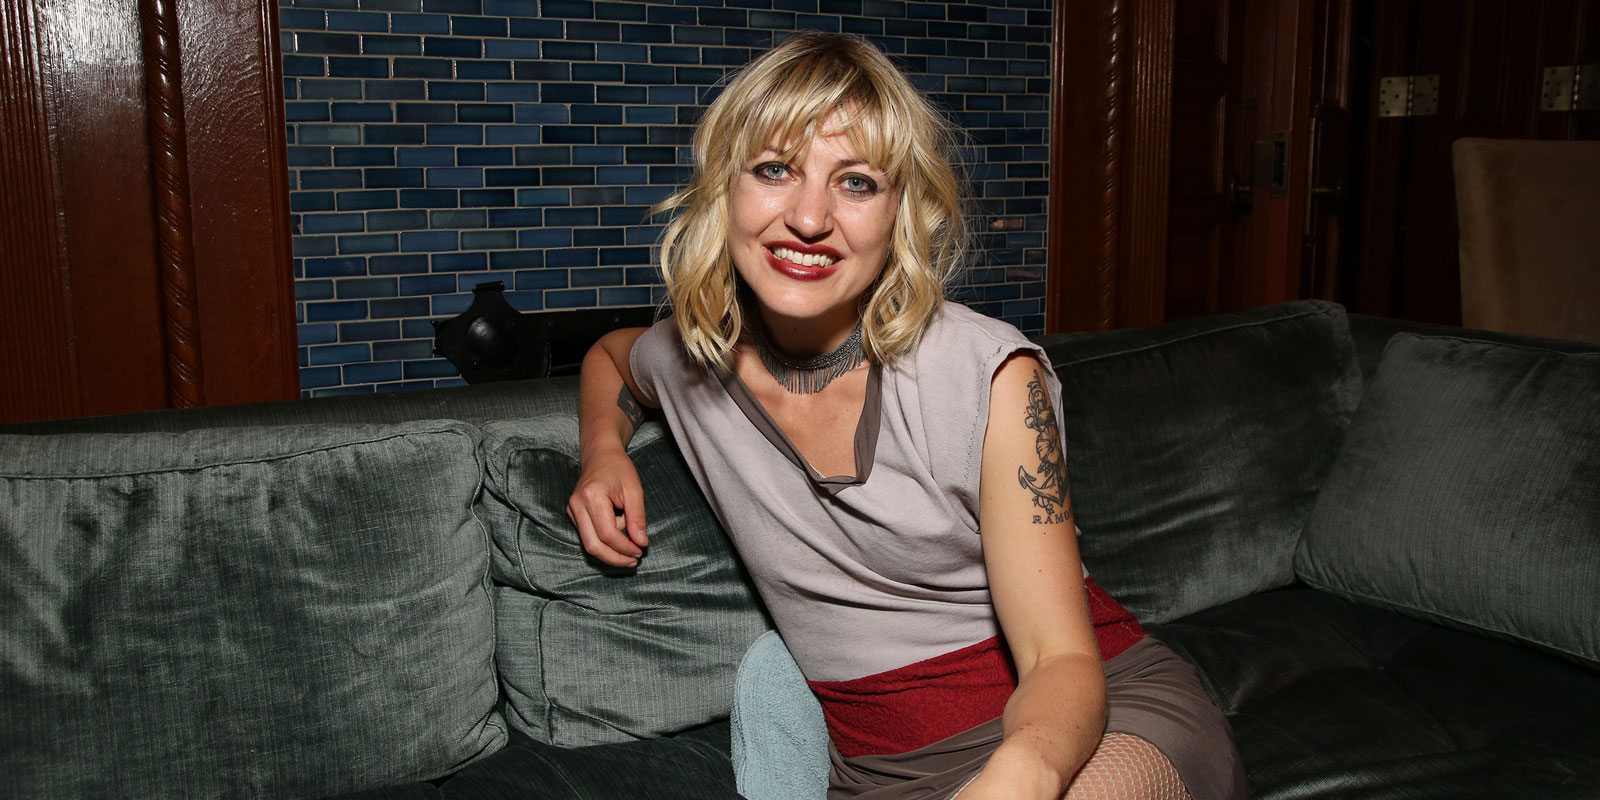 a white woman with short, blond hair and red lipstick sits on a couch